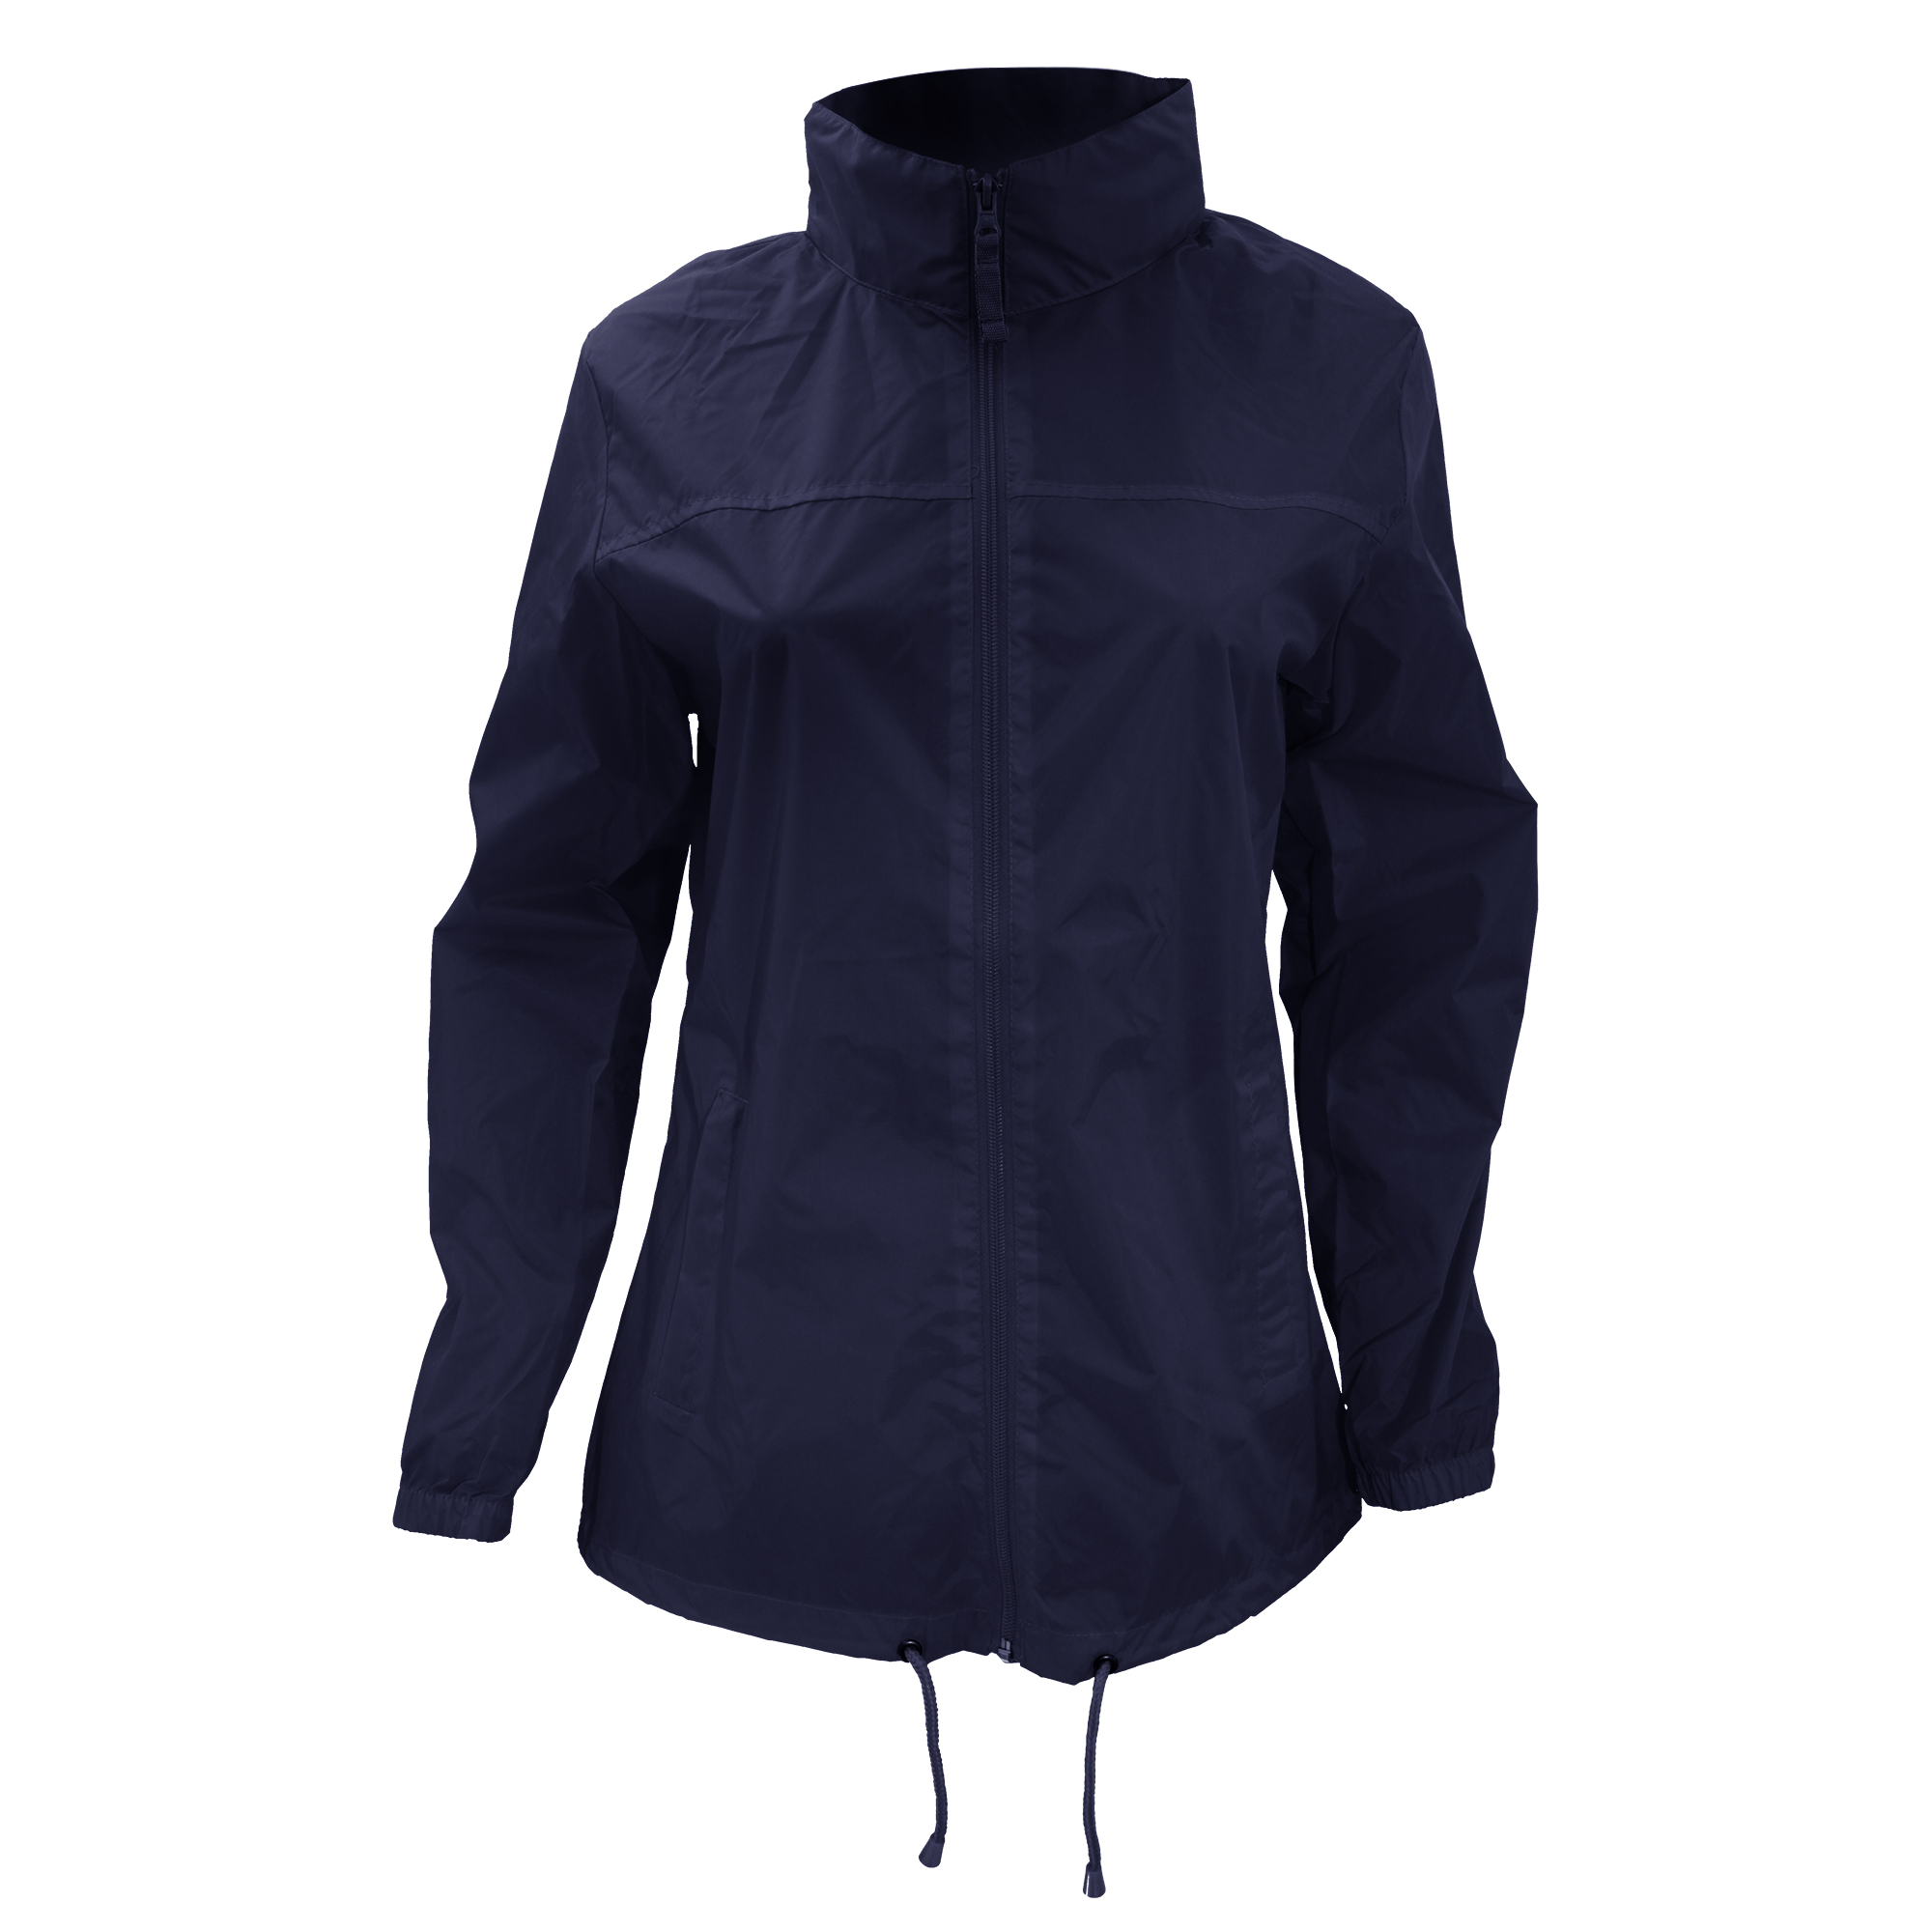 Running Rain Jacket Women S